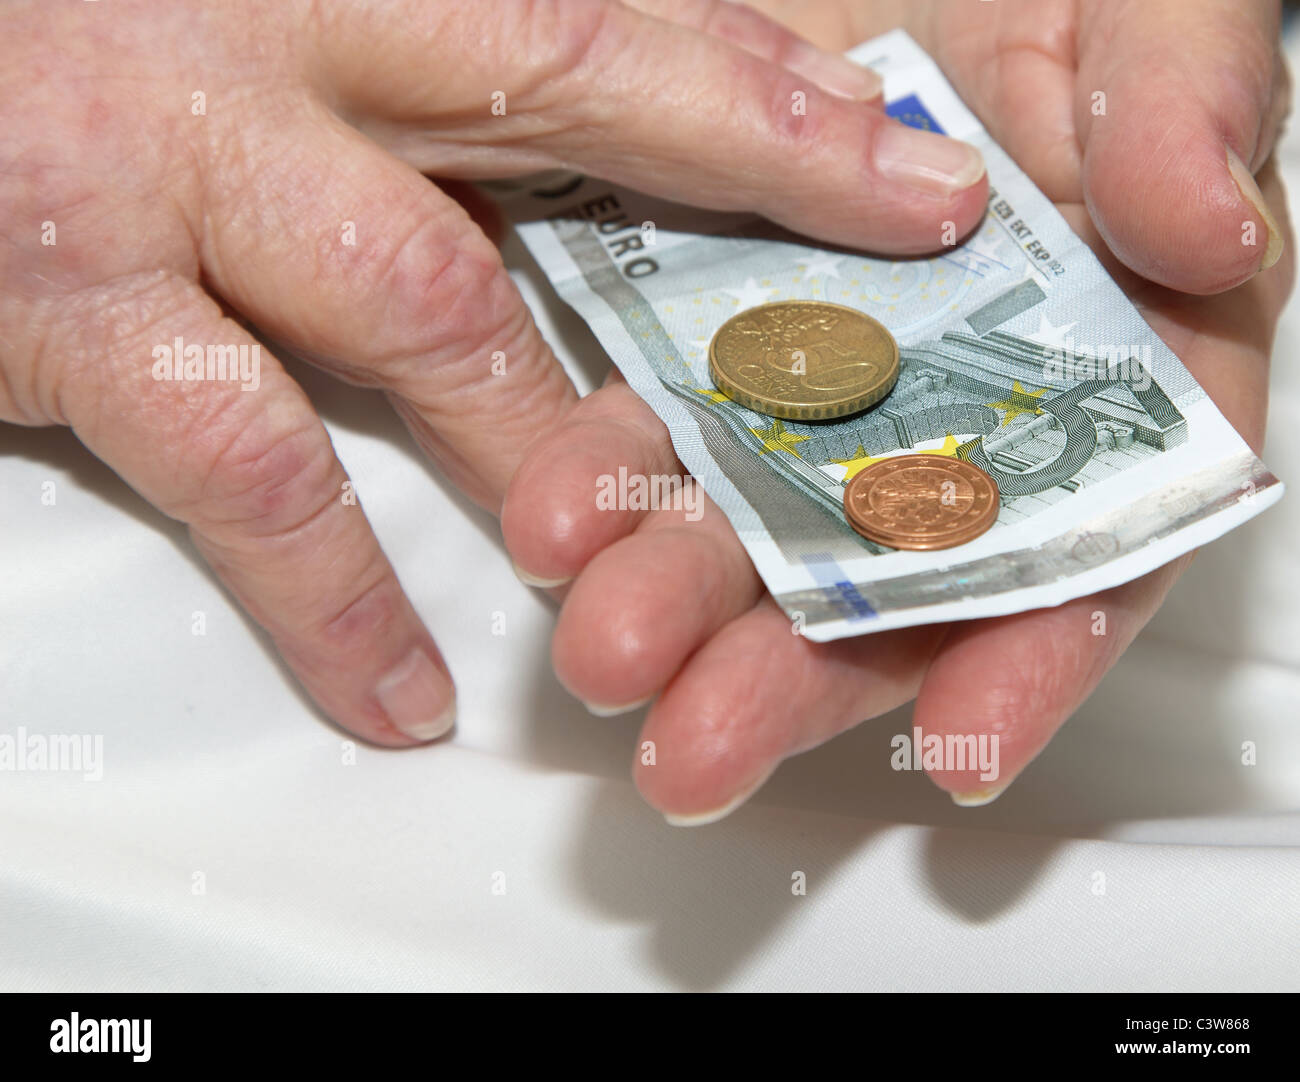 Wrinkled hands of a care-dependent person holding some euro. - Stock Image